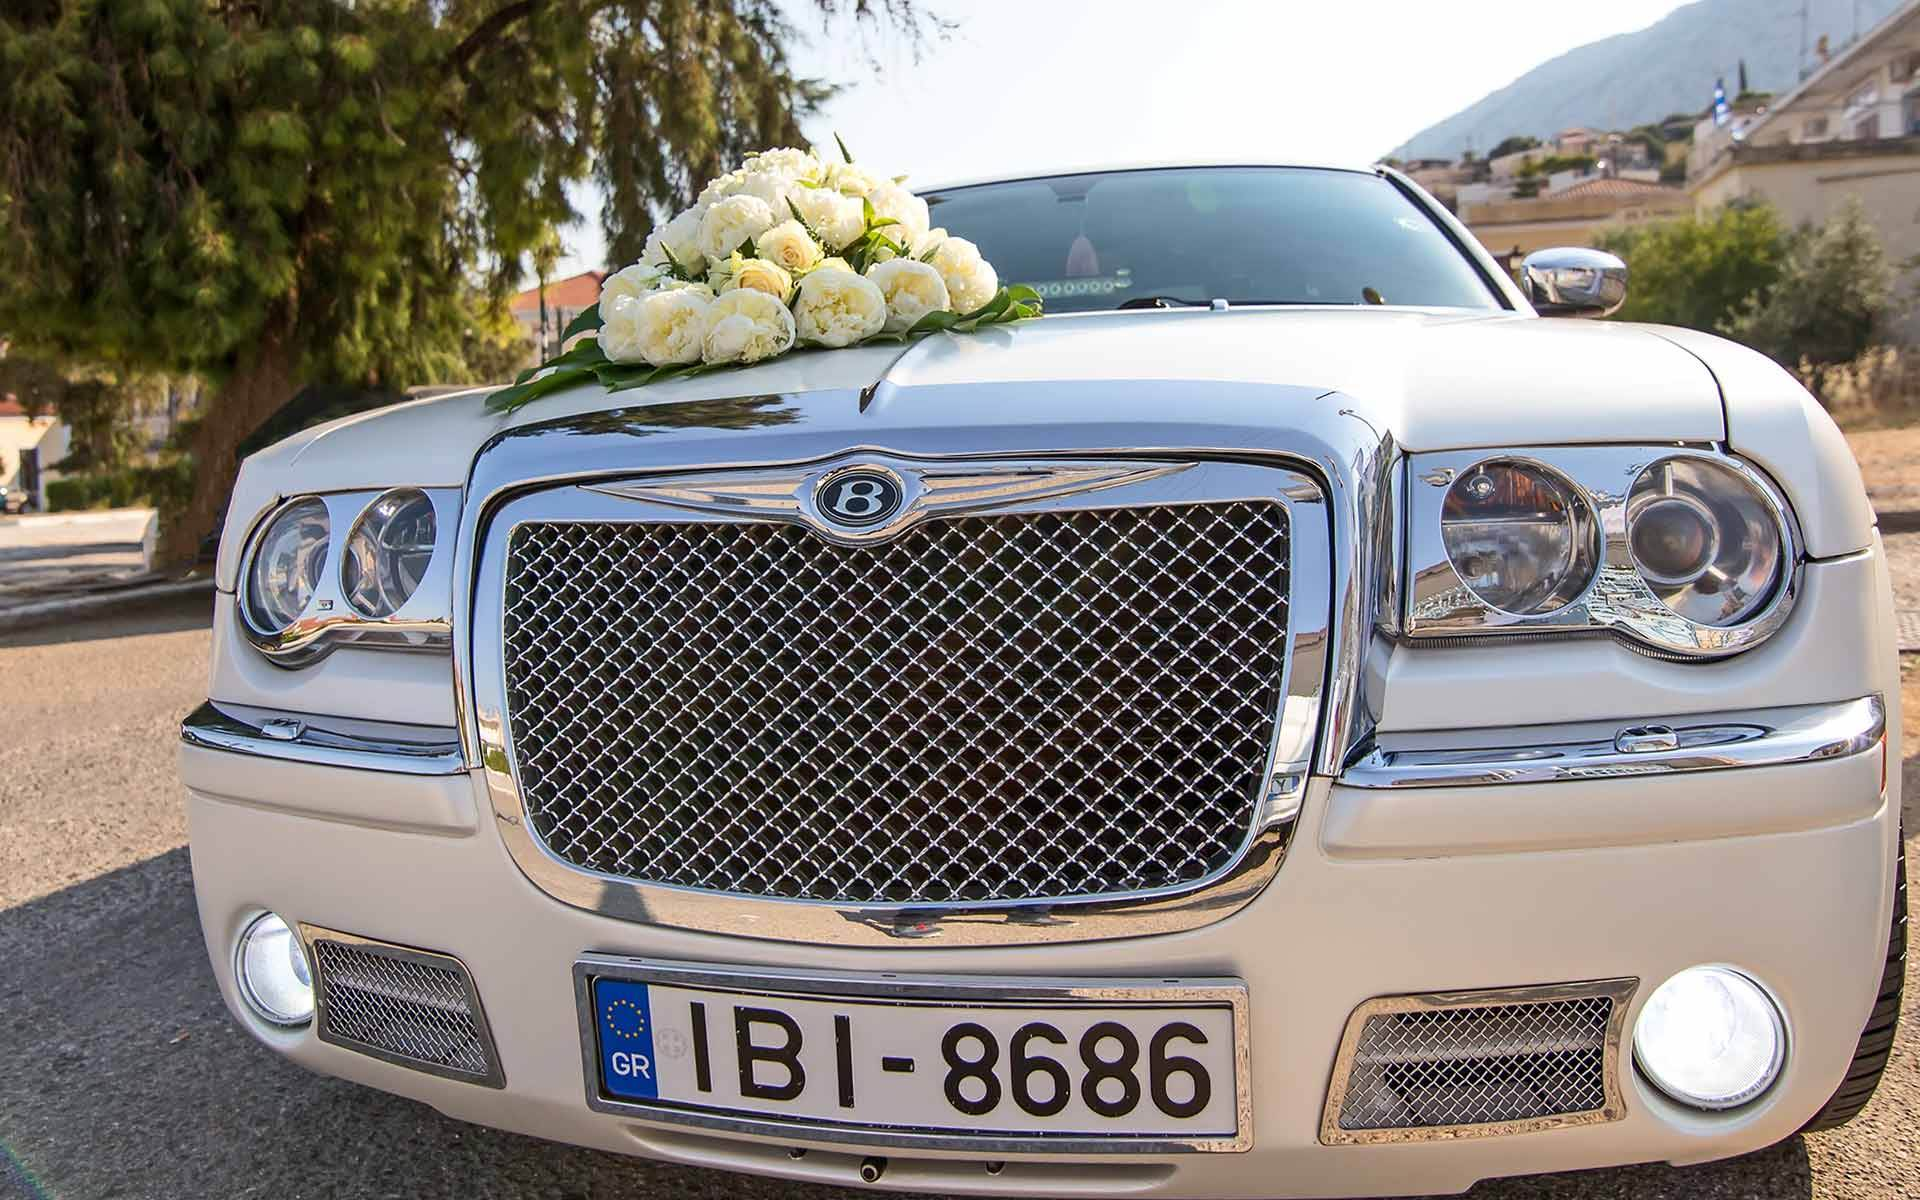 Make-Your-Wedding-Day-A-Truly-Special-Day-With-This-Beautiful-White-Bentley